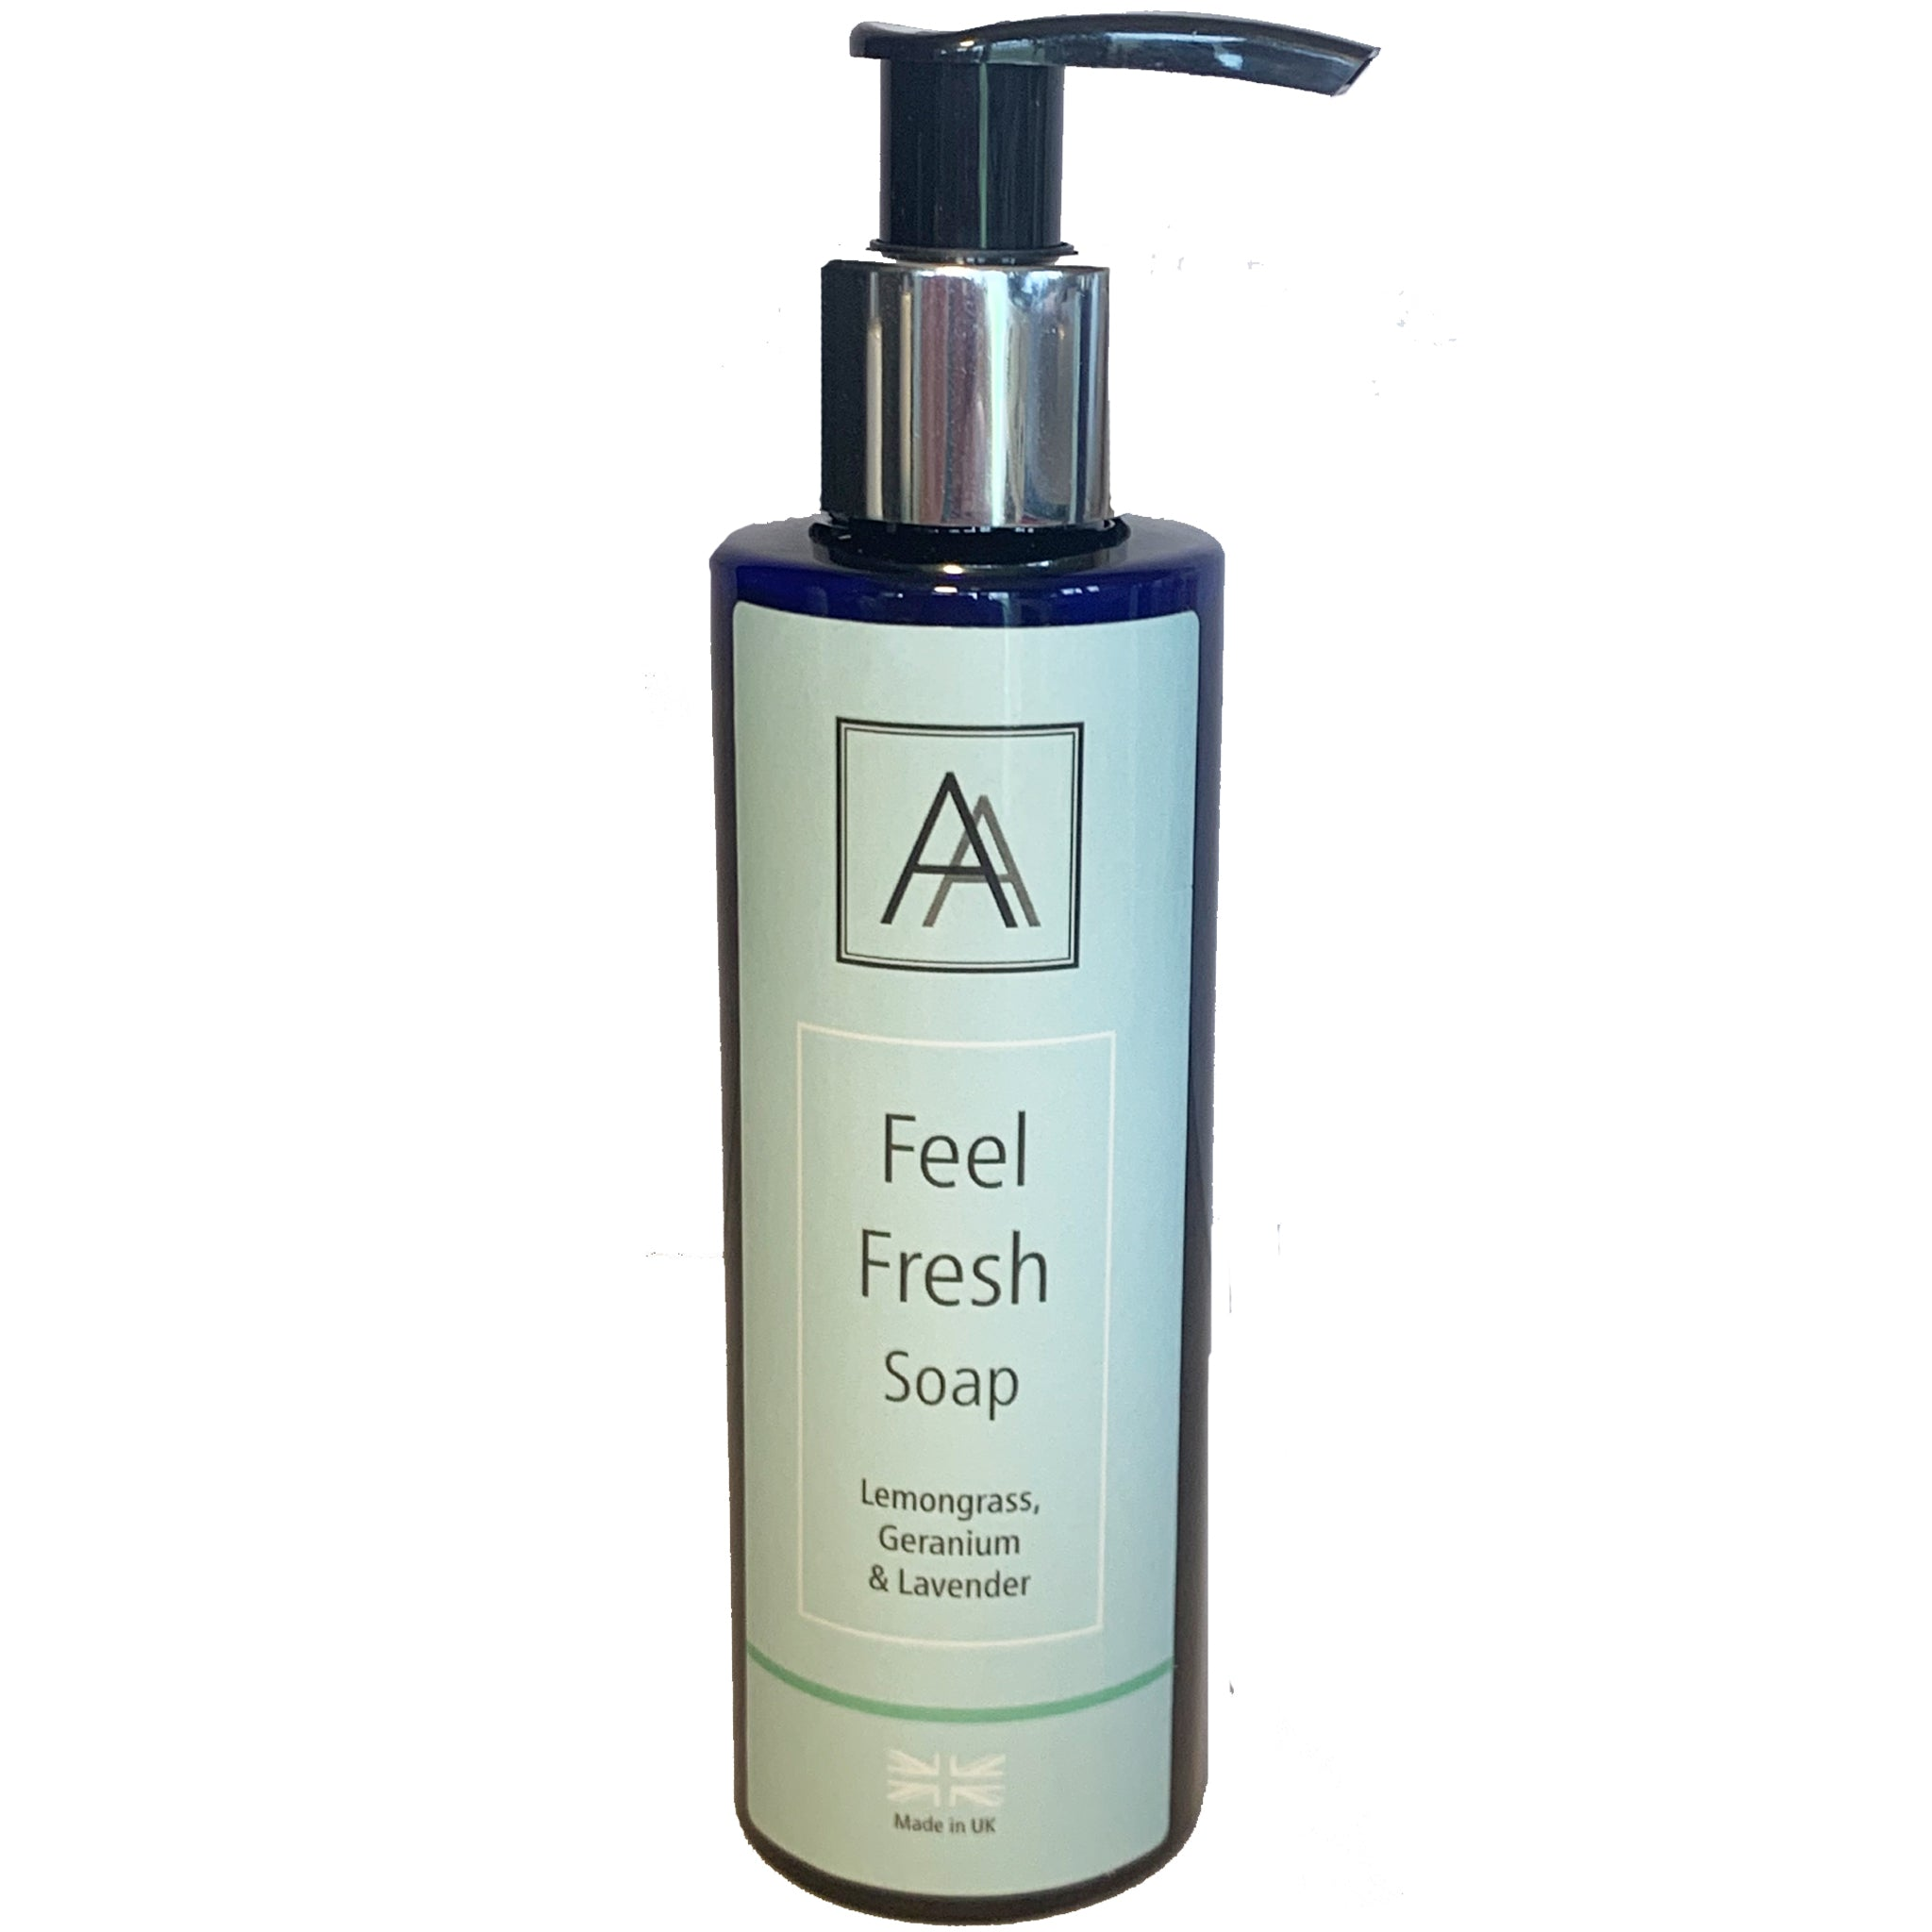 Feel Fresh anti-bacterial Hand, Face and Body Soap